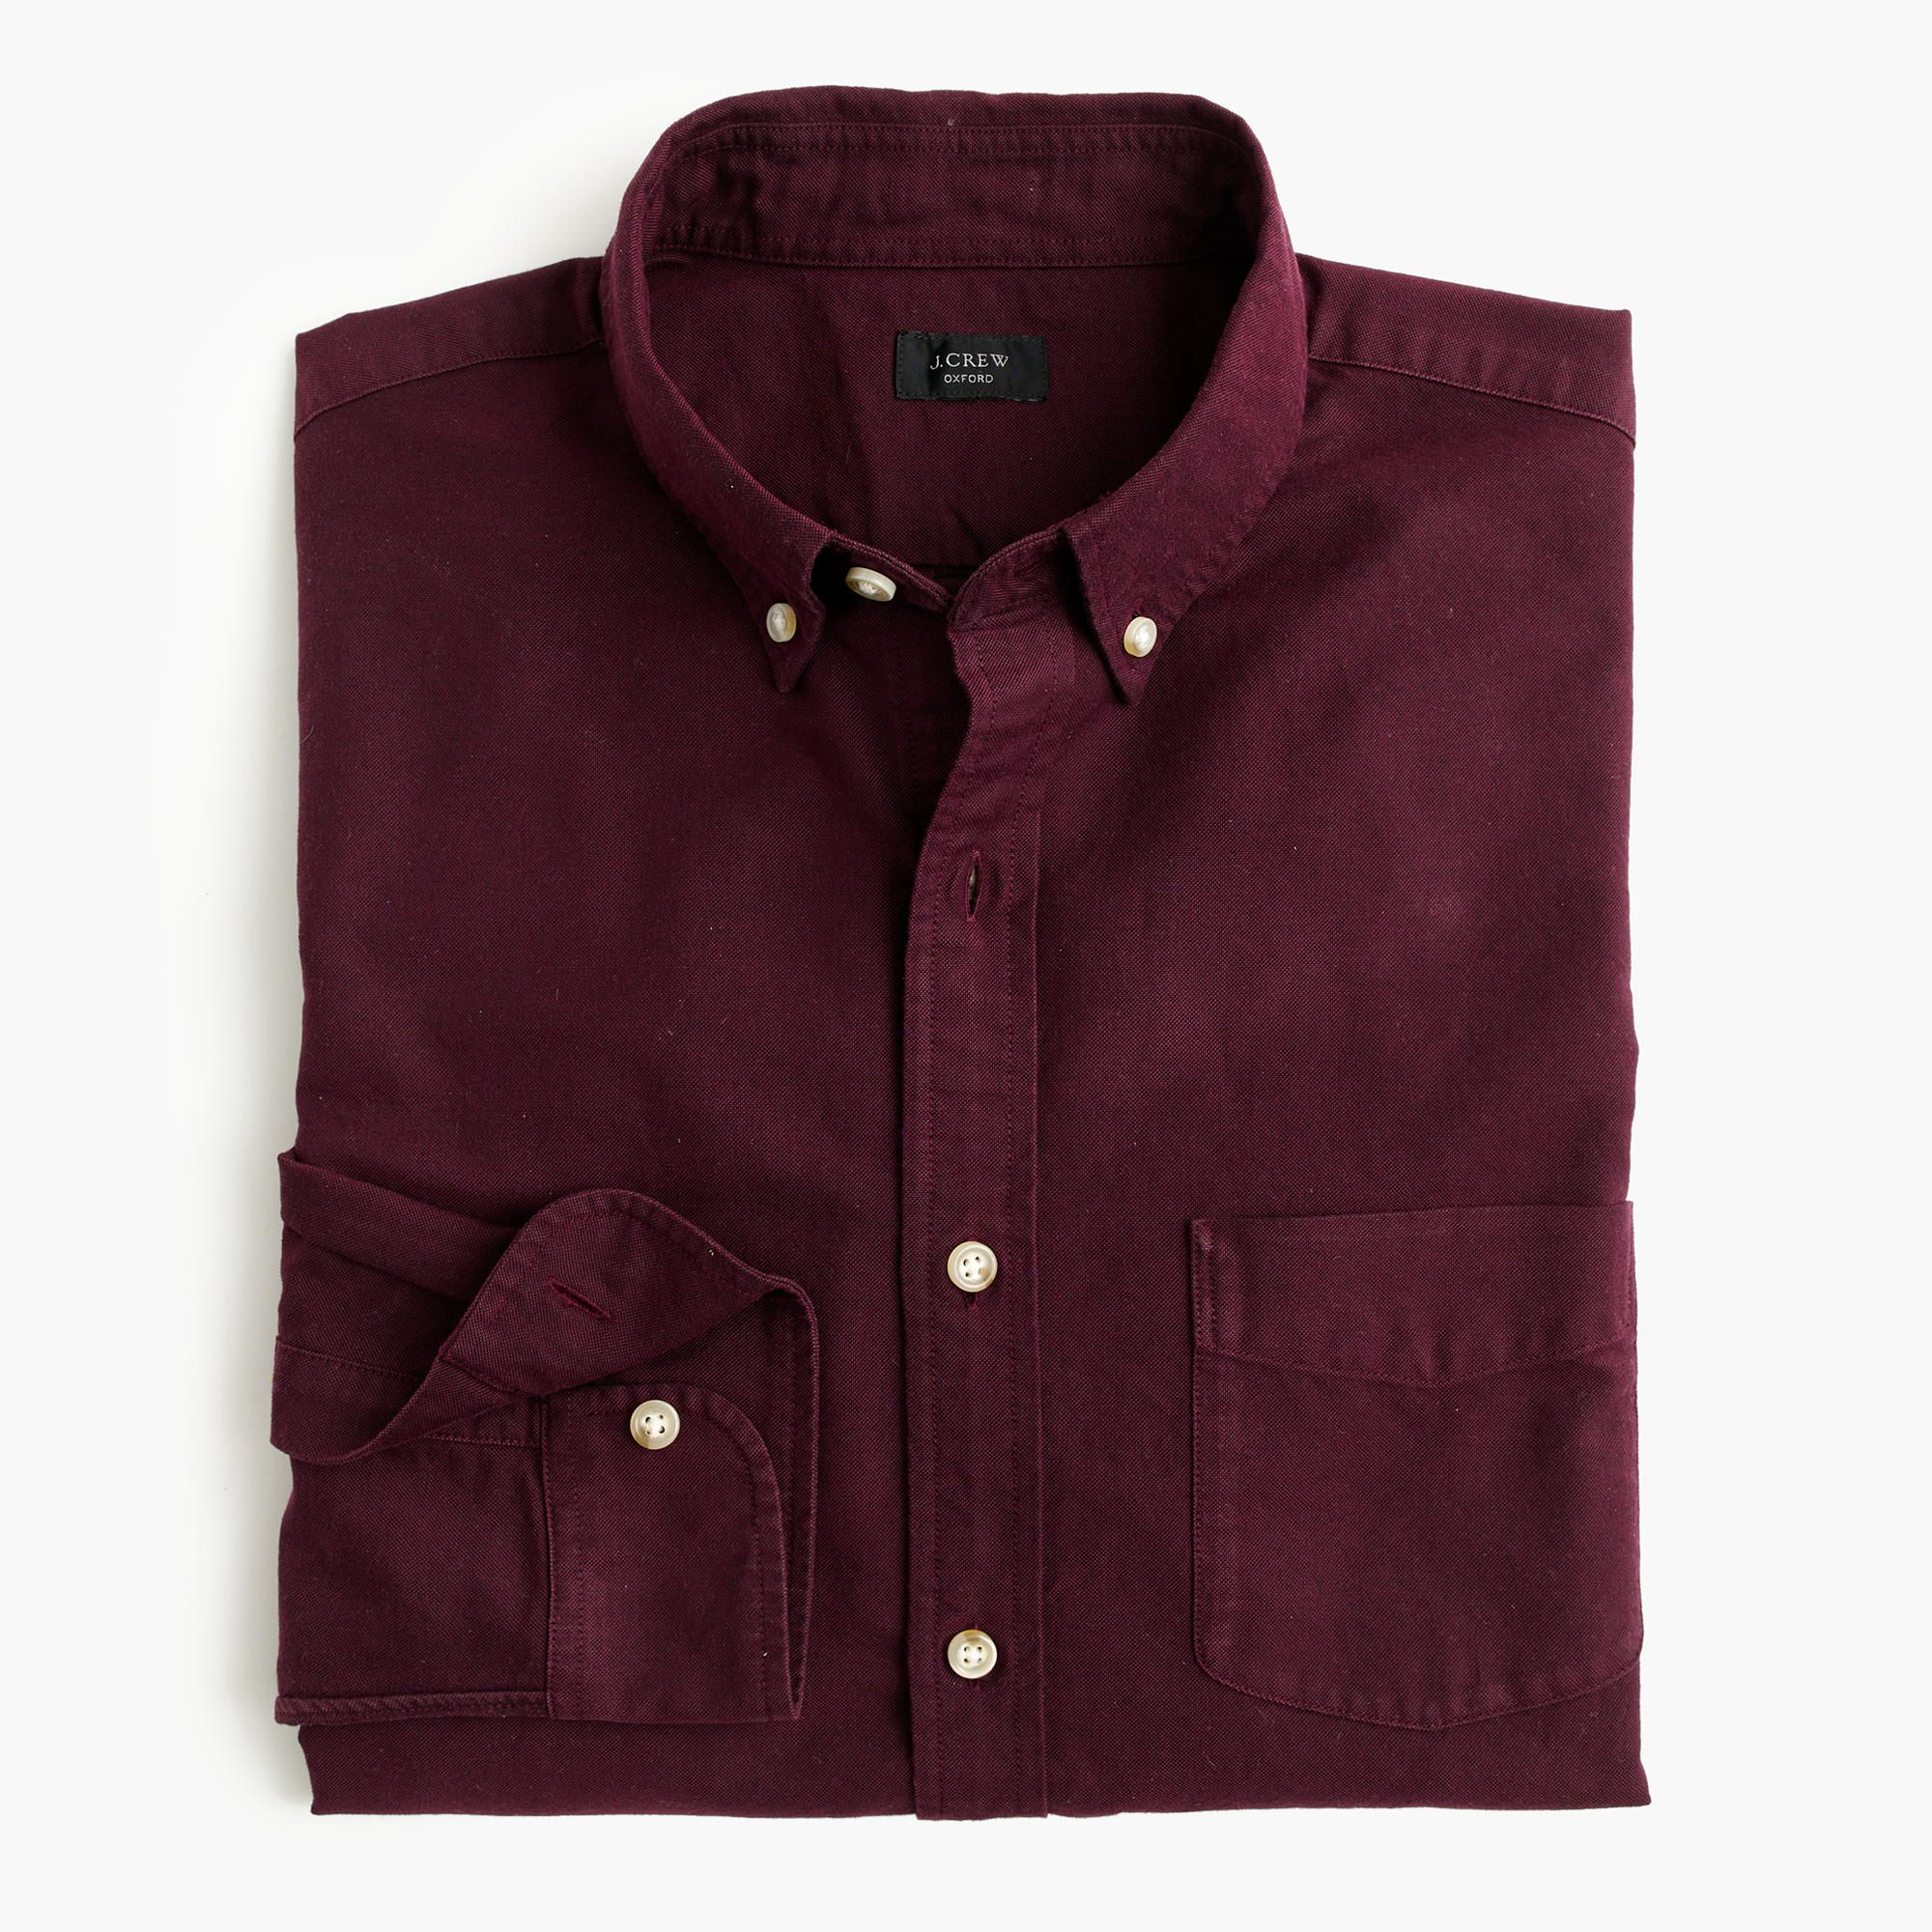 Slim vintage oxford shirt in tonal cotton : oxford | J.Crew